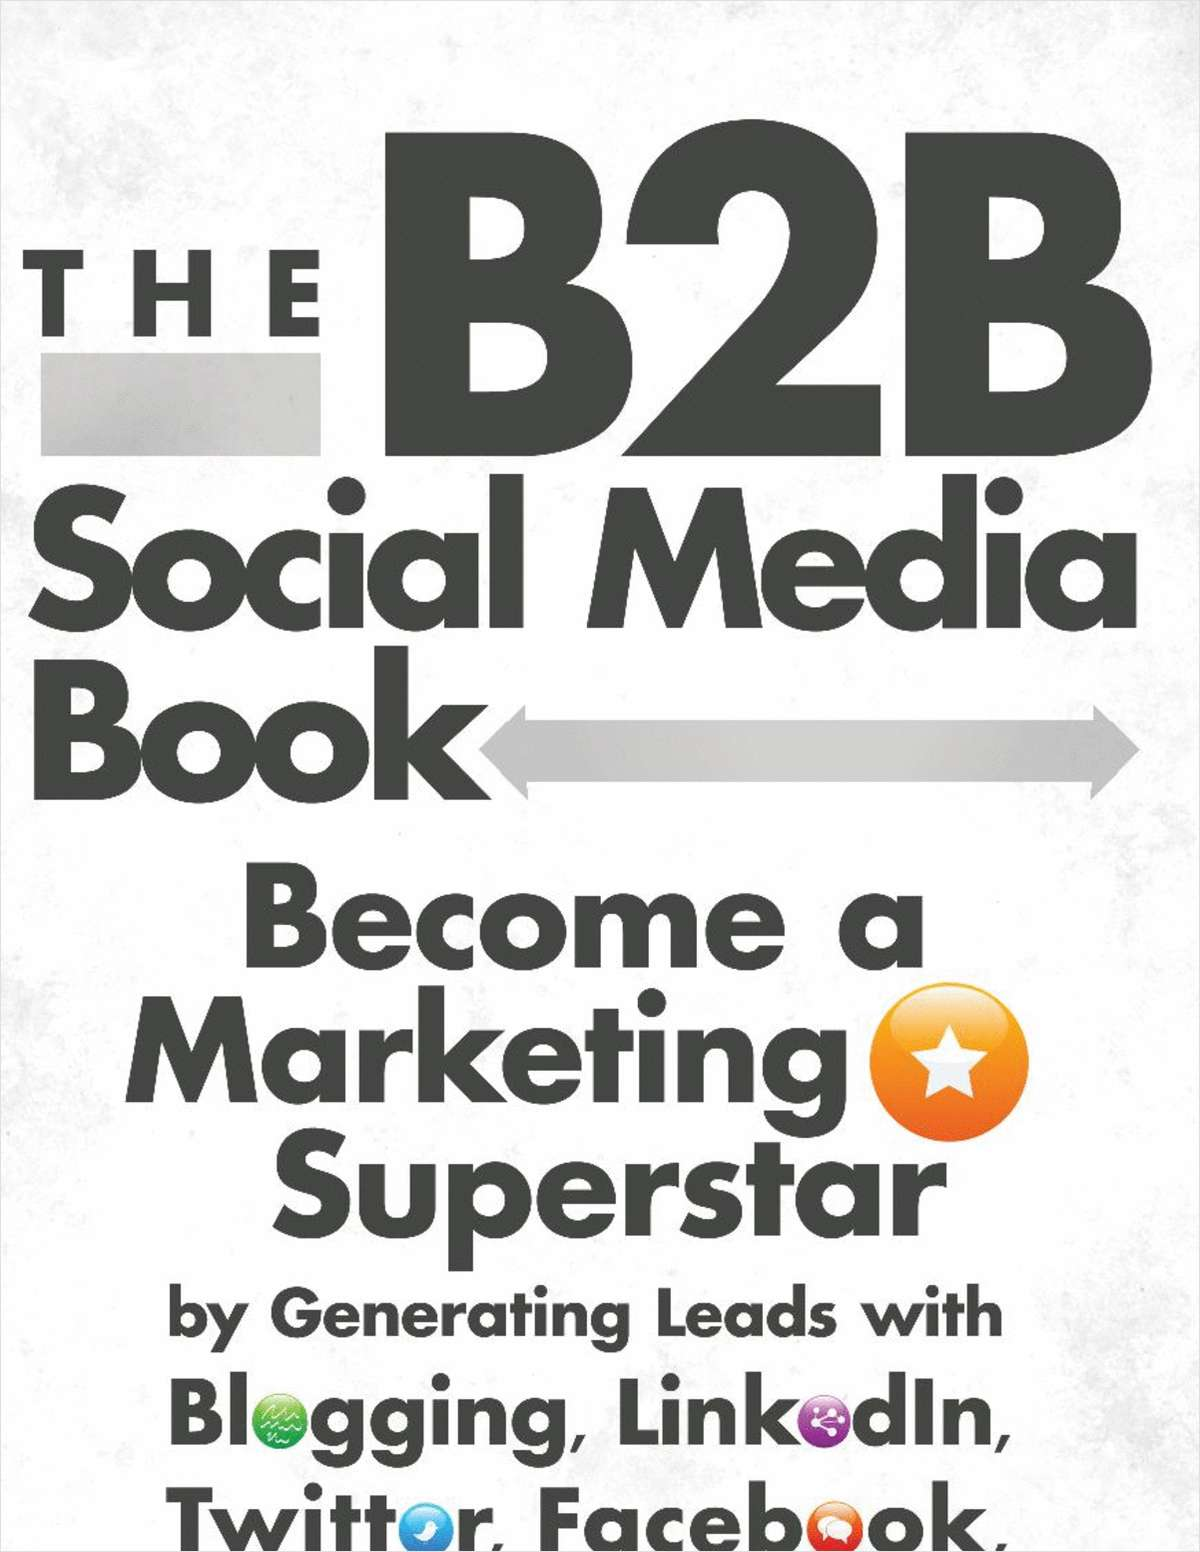 The B2B Social Media Book: Becoming a Marketing Superstar - Free Sample Chapter